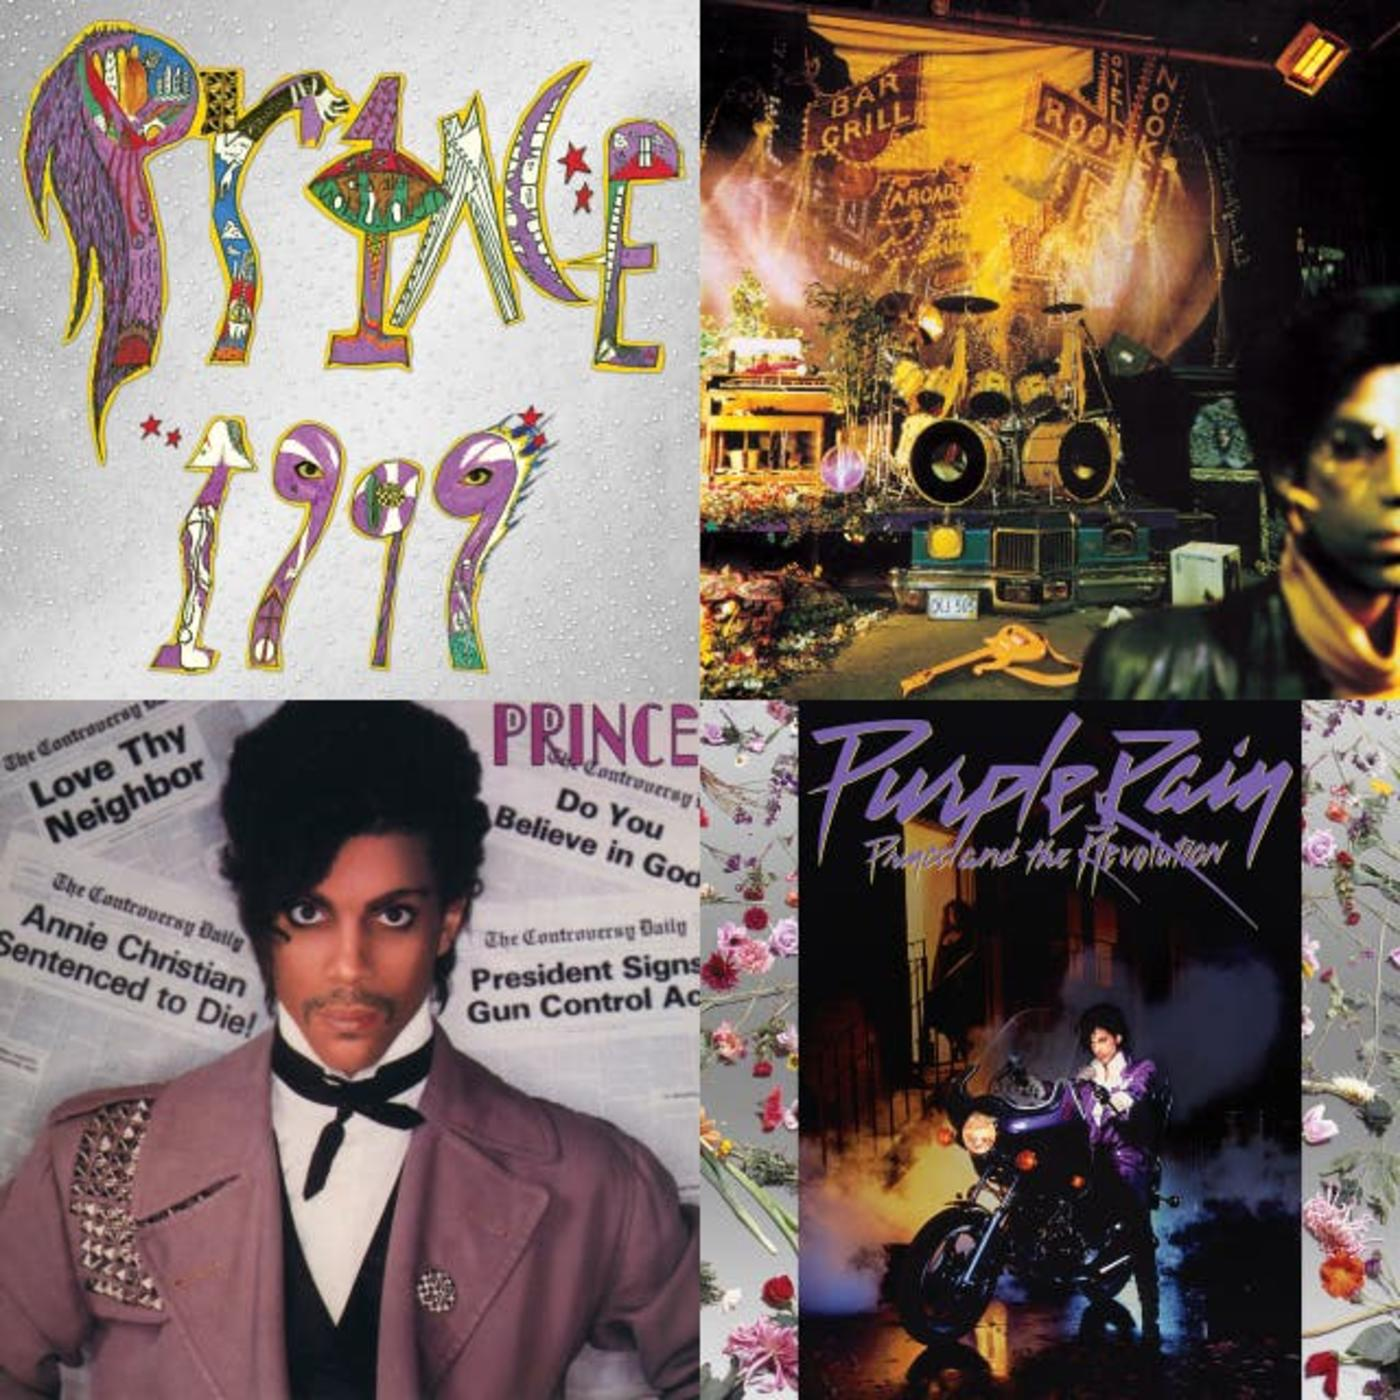 Prince - New Year's Eve in September